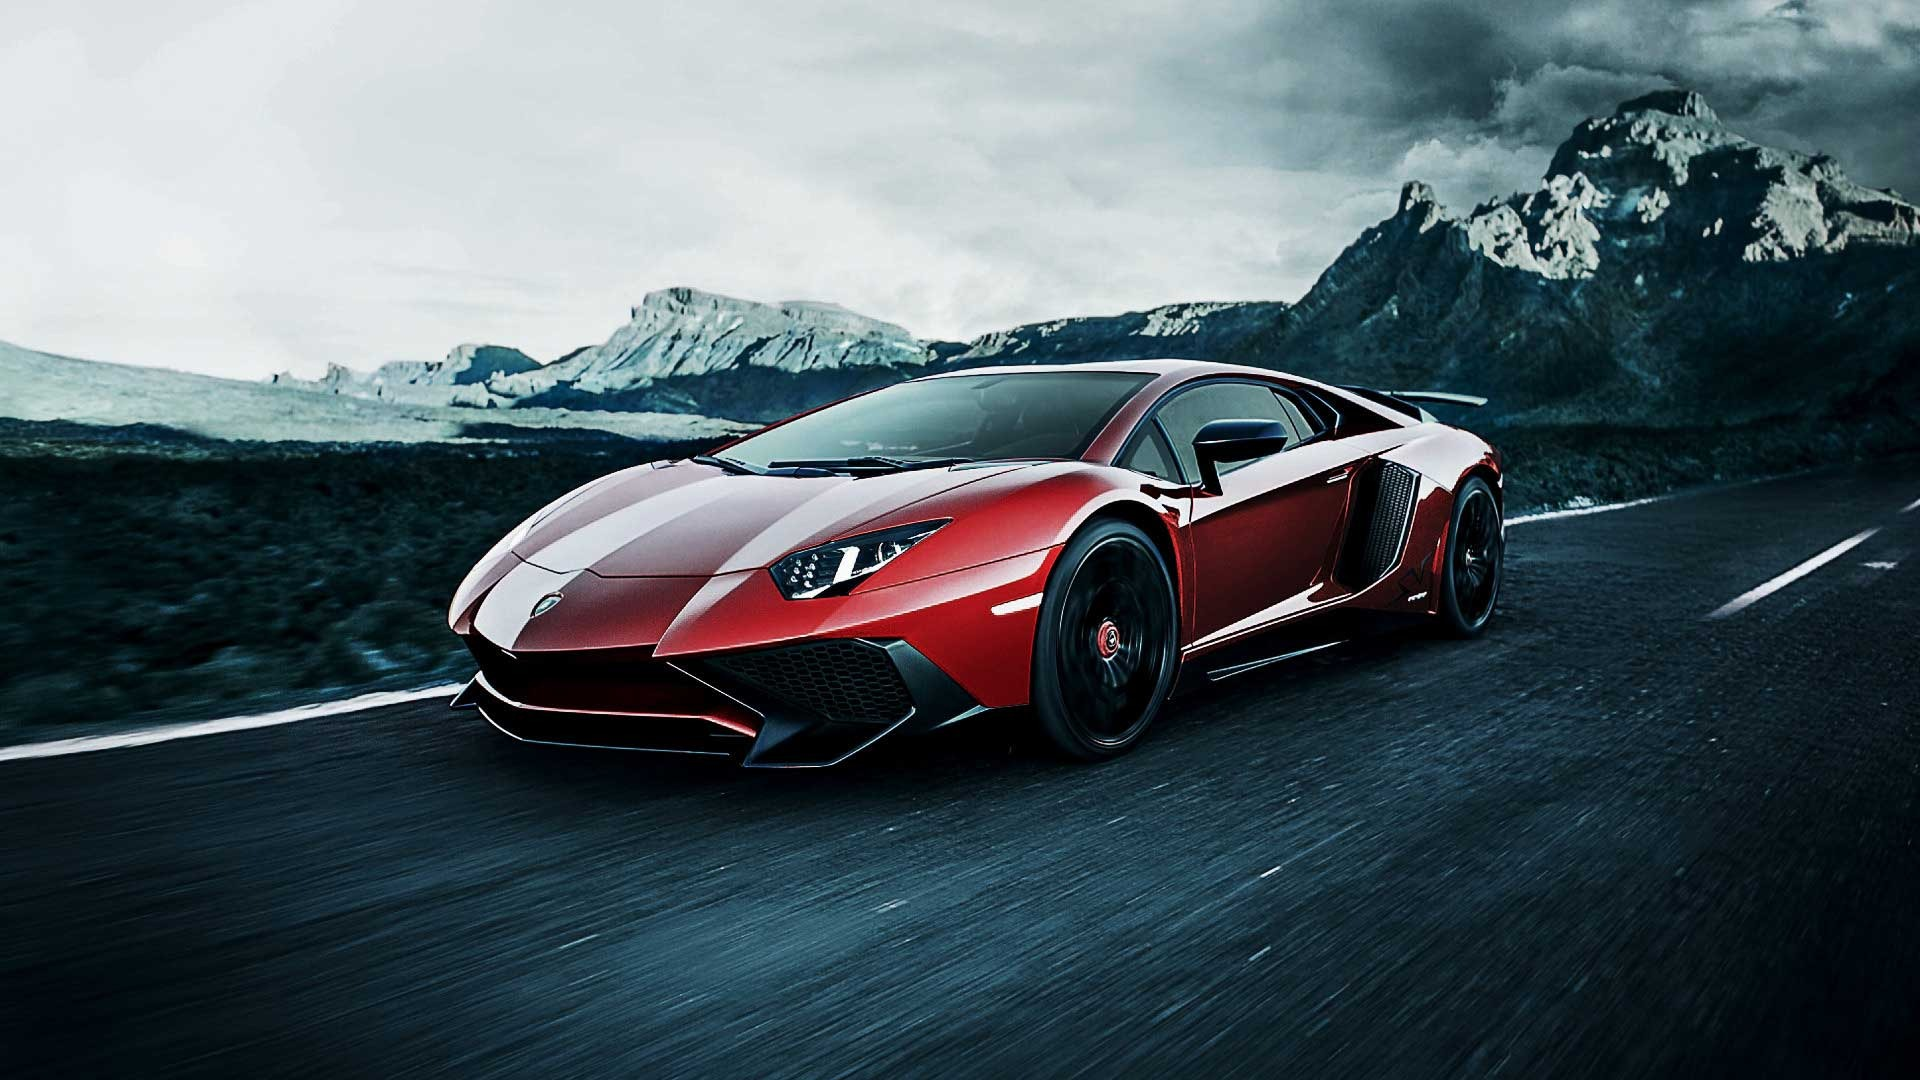 Red Lamborghini on a Speed Road 243.51 Kb